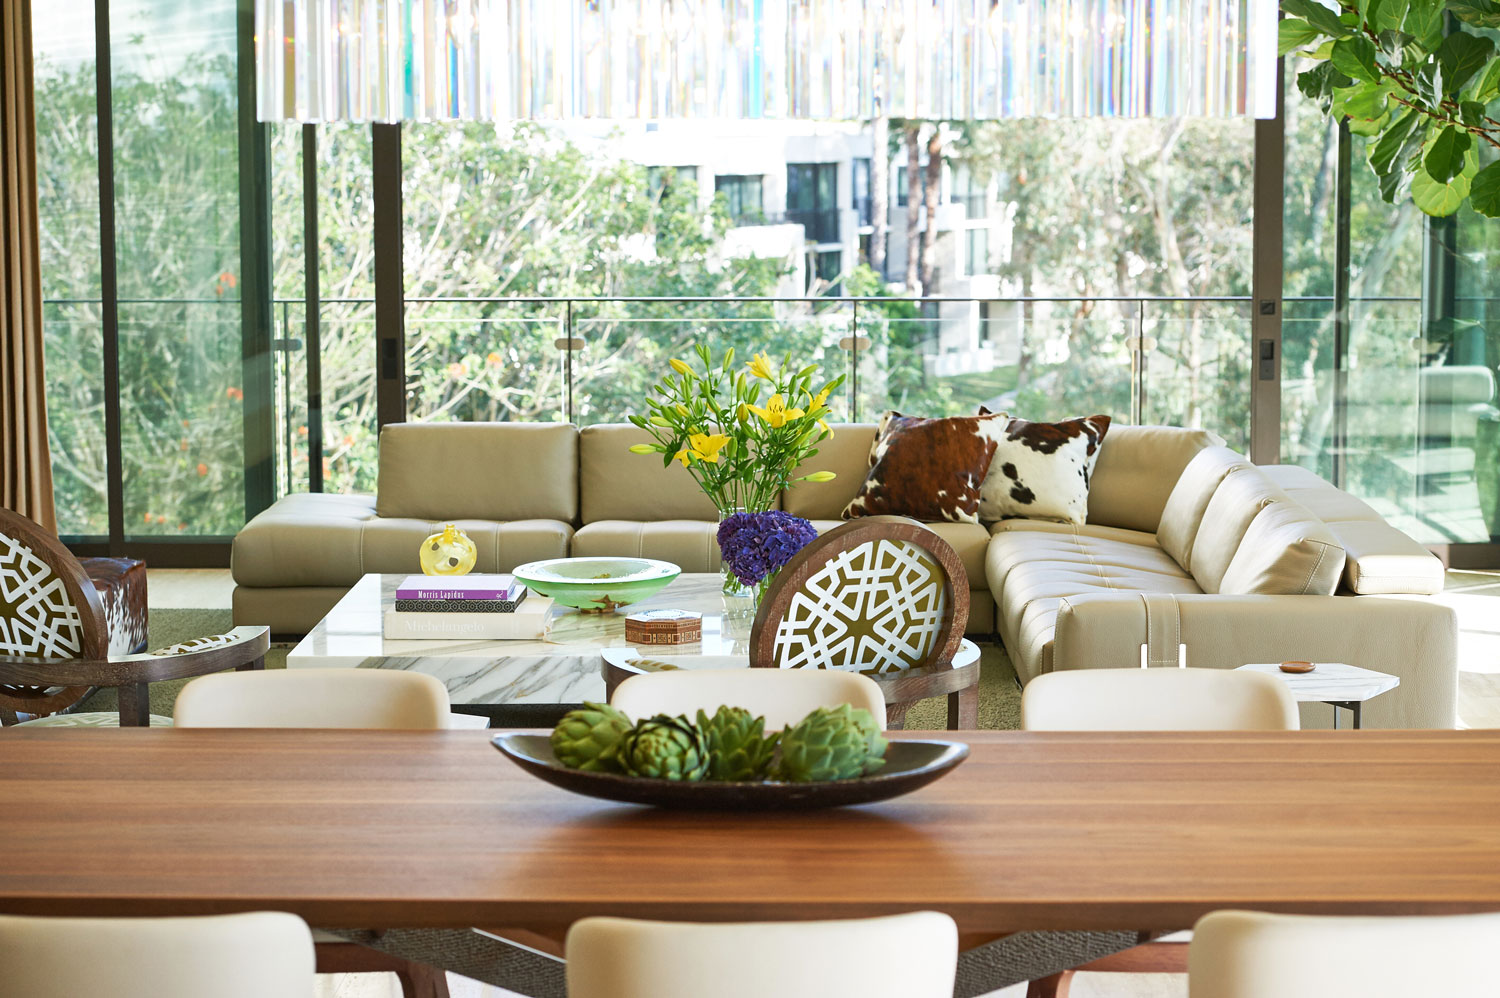 Energetic Penthouse in Newport Beach, California | Traditional Home